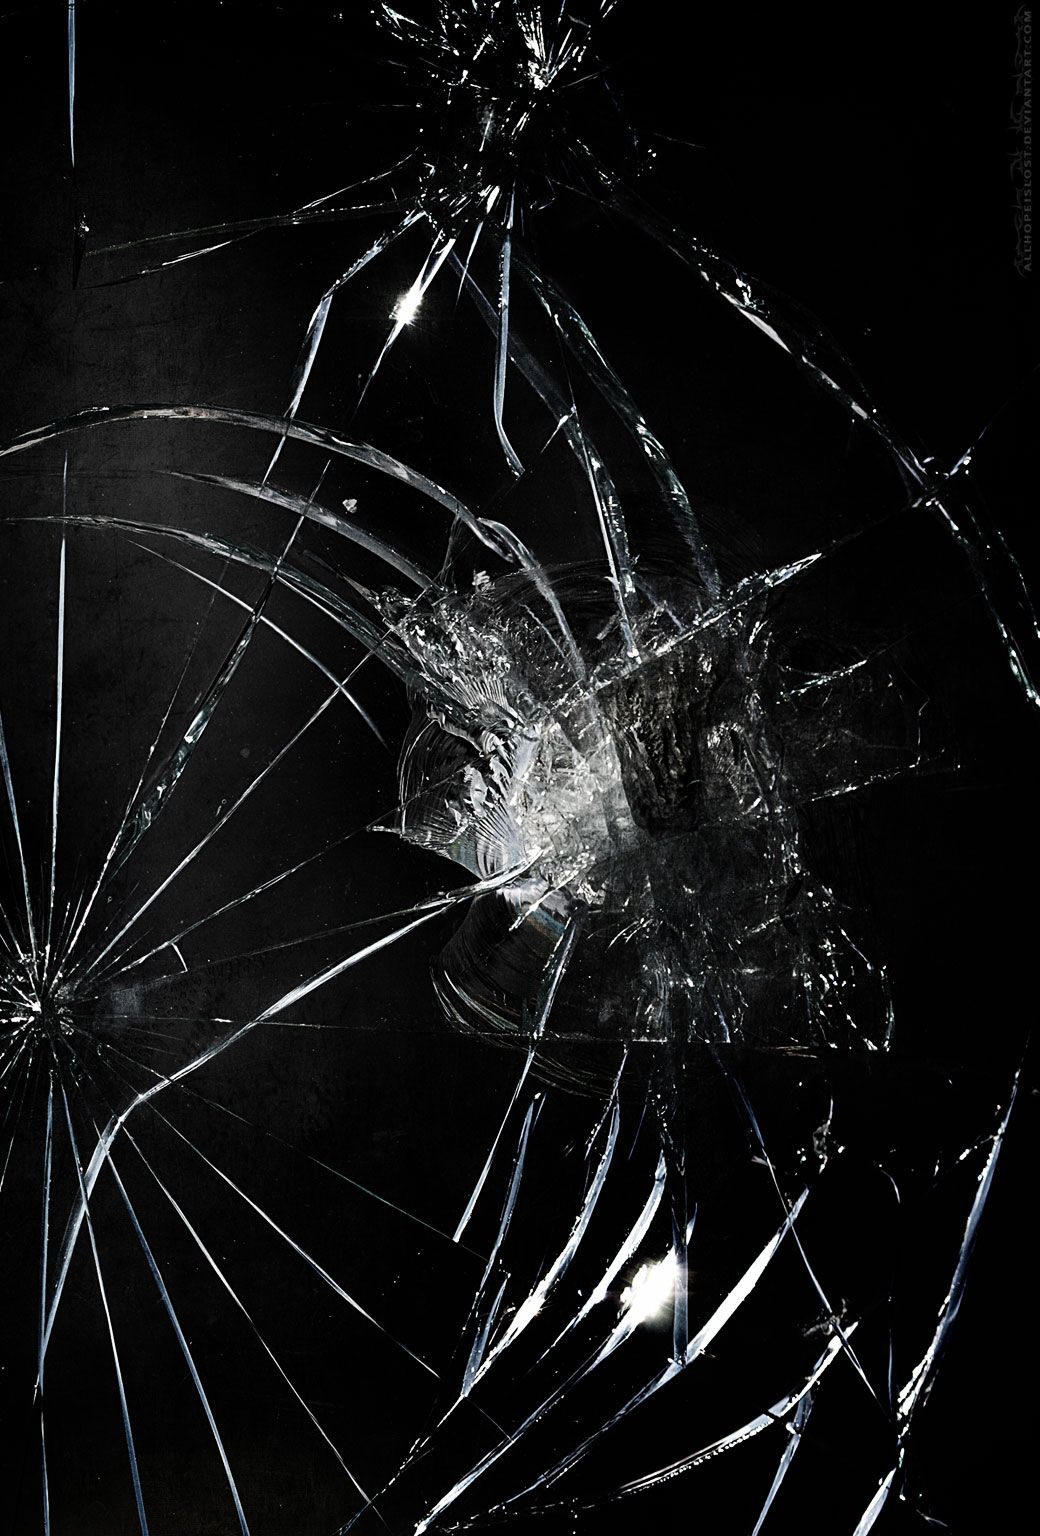 Free Cracked Screen Wallpaper Phone Beautiful Hd Wallpapers Broken Screen Wallpaper Screen Wallpaper Hd Screen Wallpaper